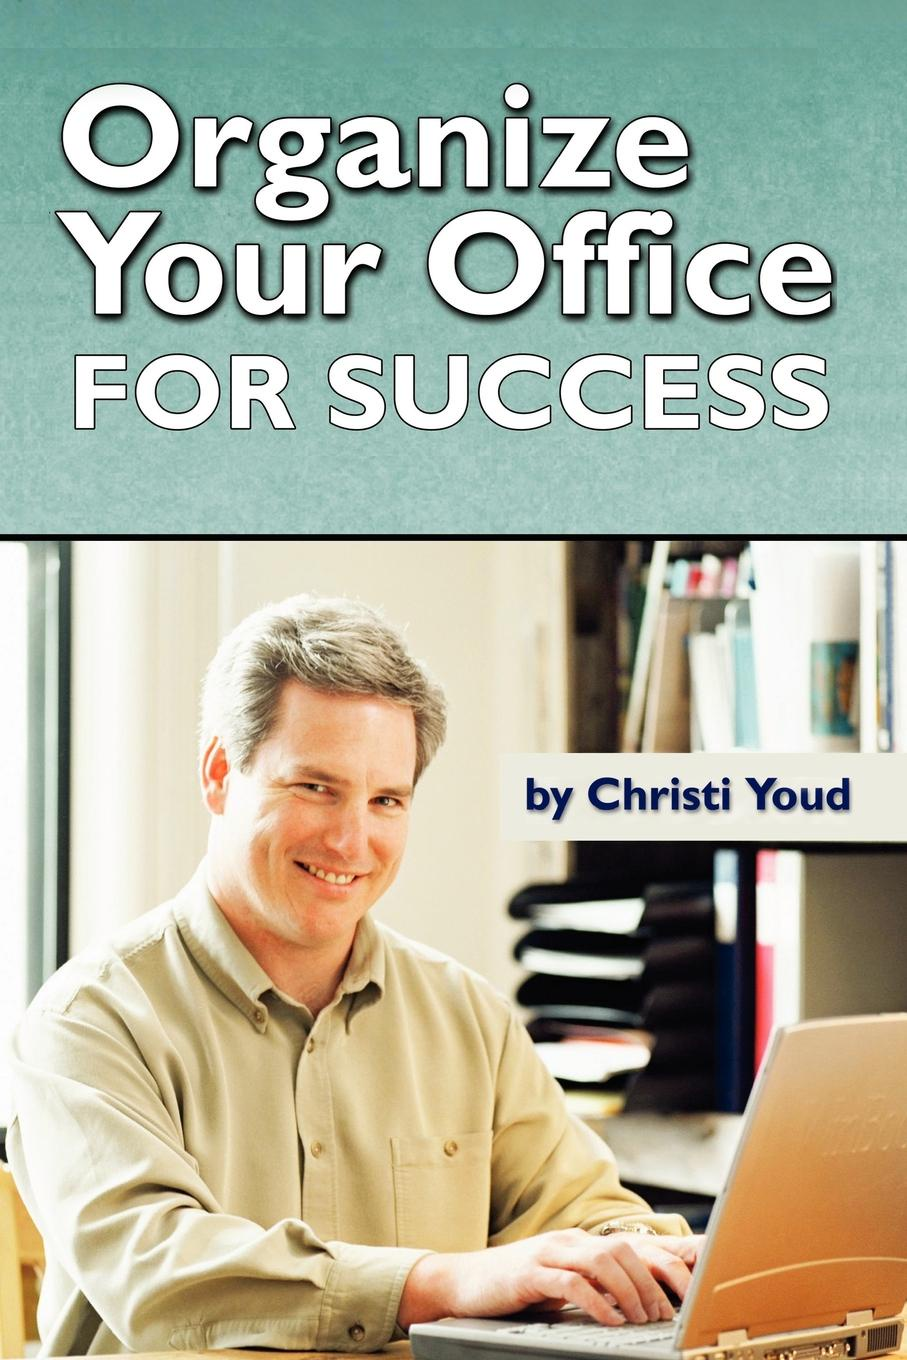 Organize Your Office For Success Need help getting your office streamlined for greater productivity?...